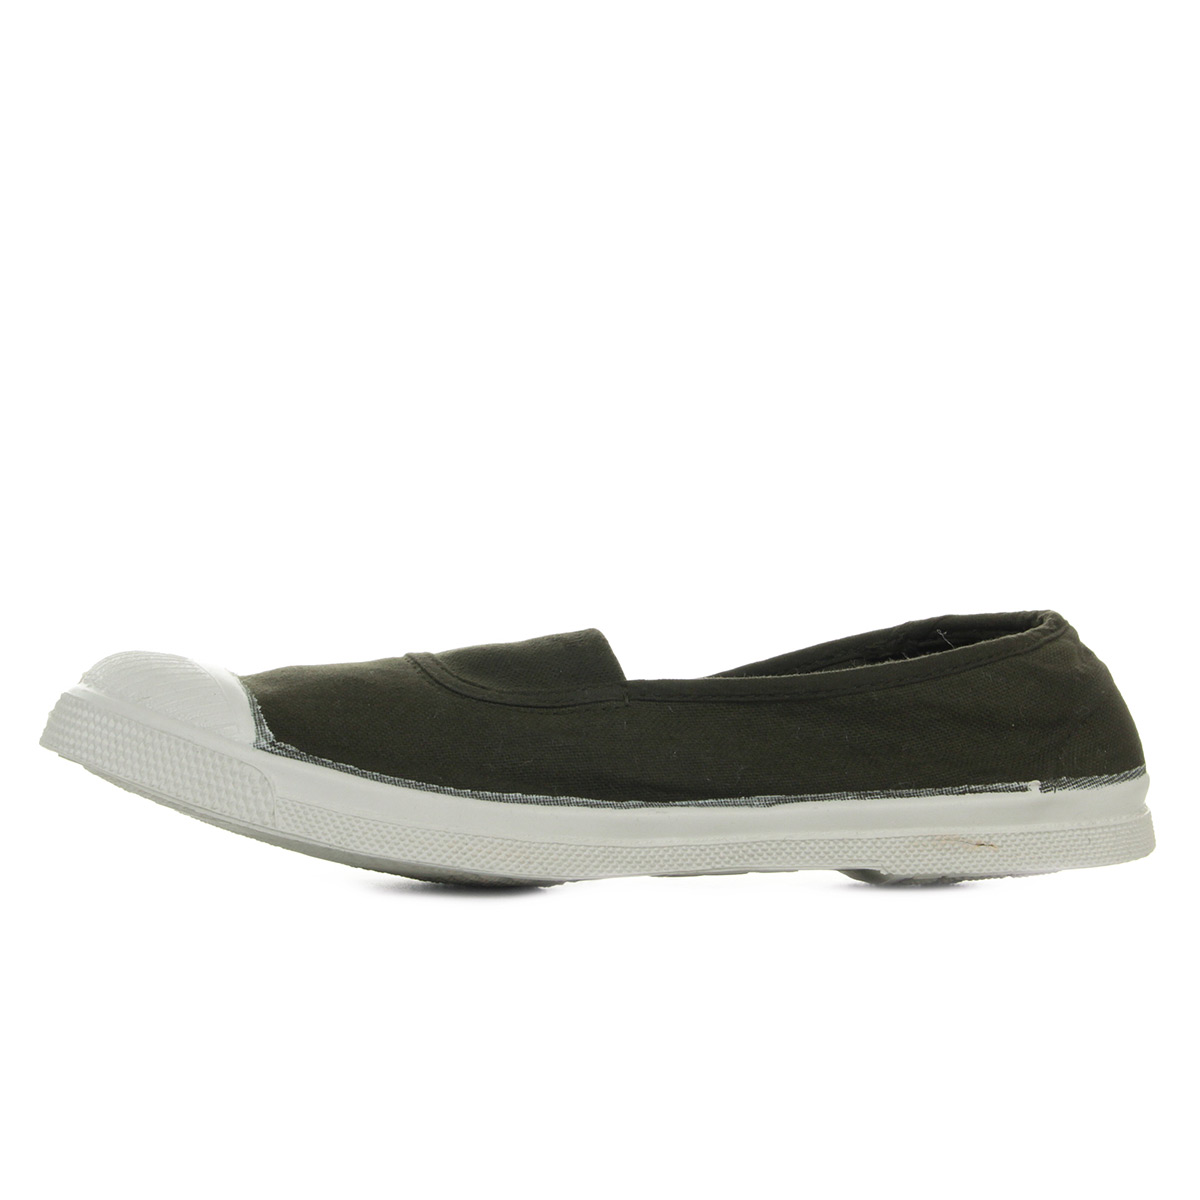 Bensimon Tennis Elastique Kaki F15002C15B612, Baskets mode femme